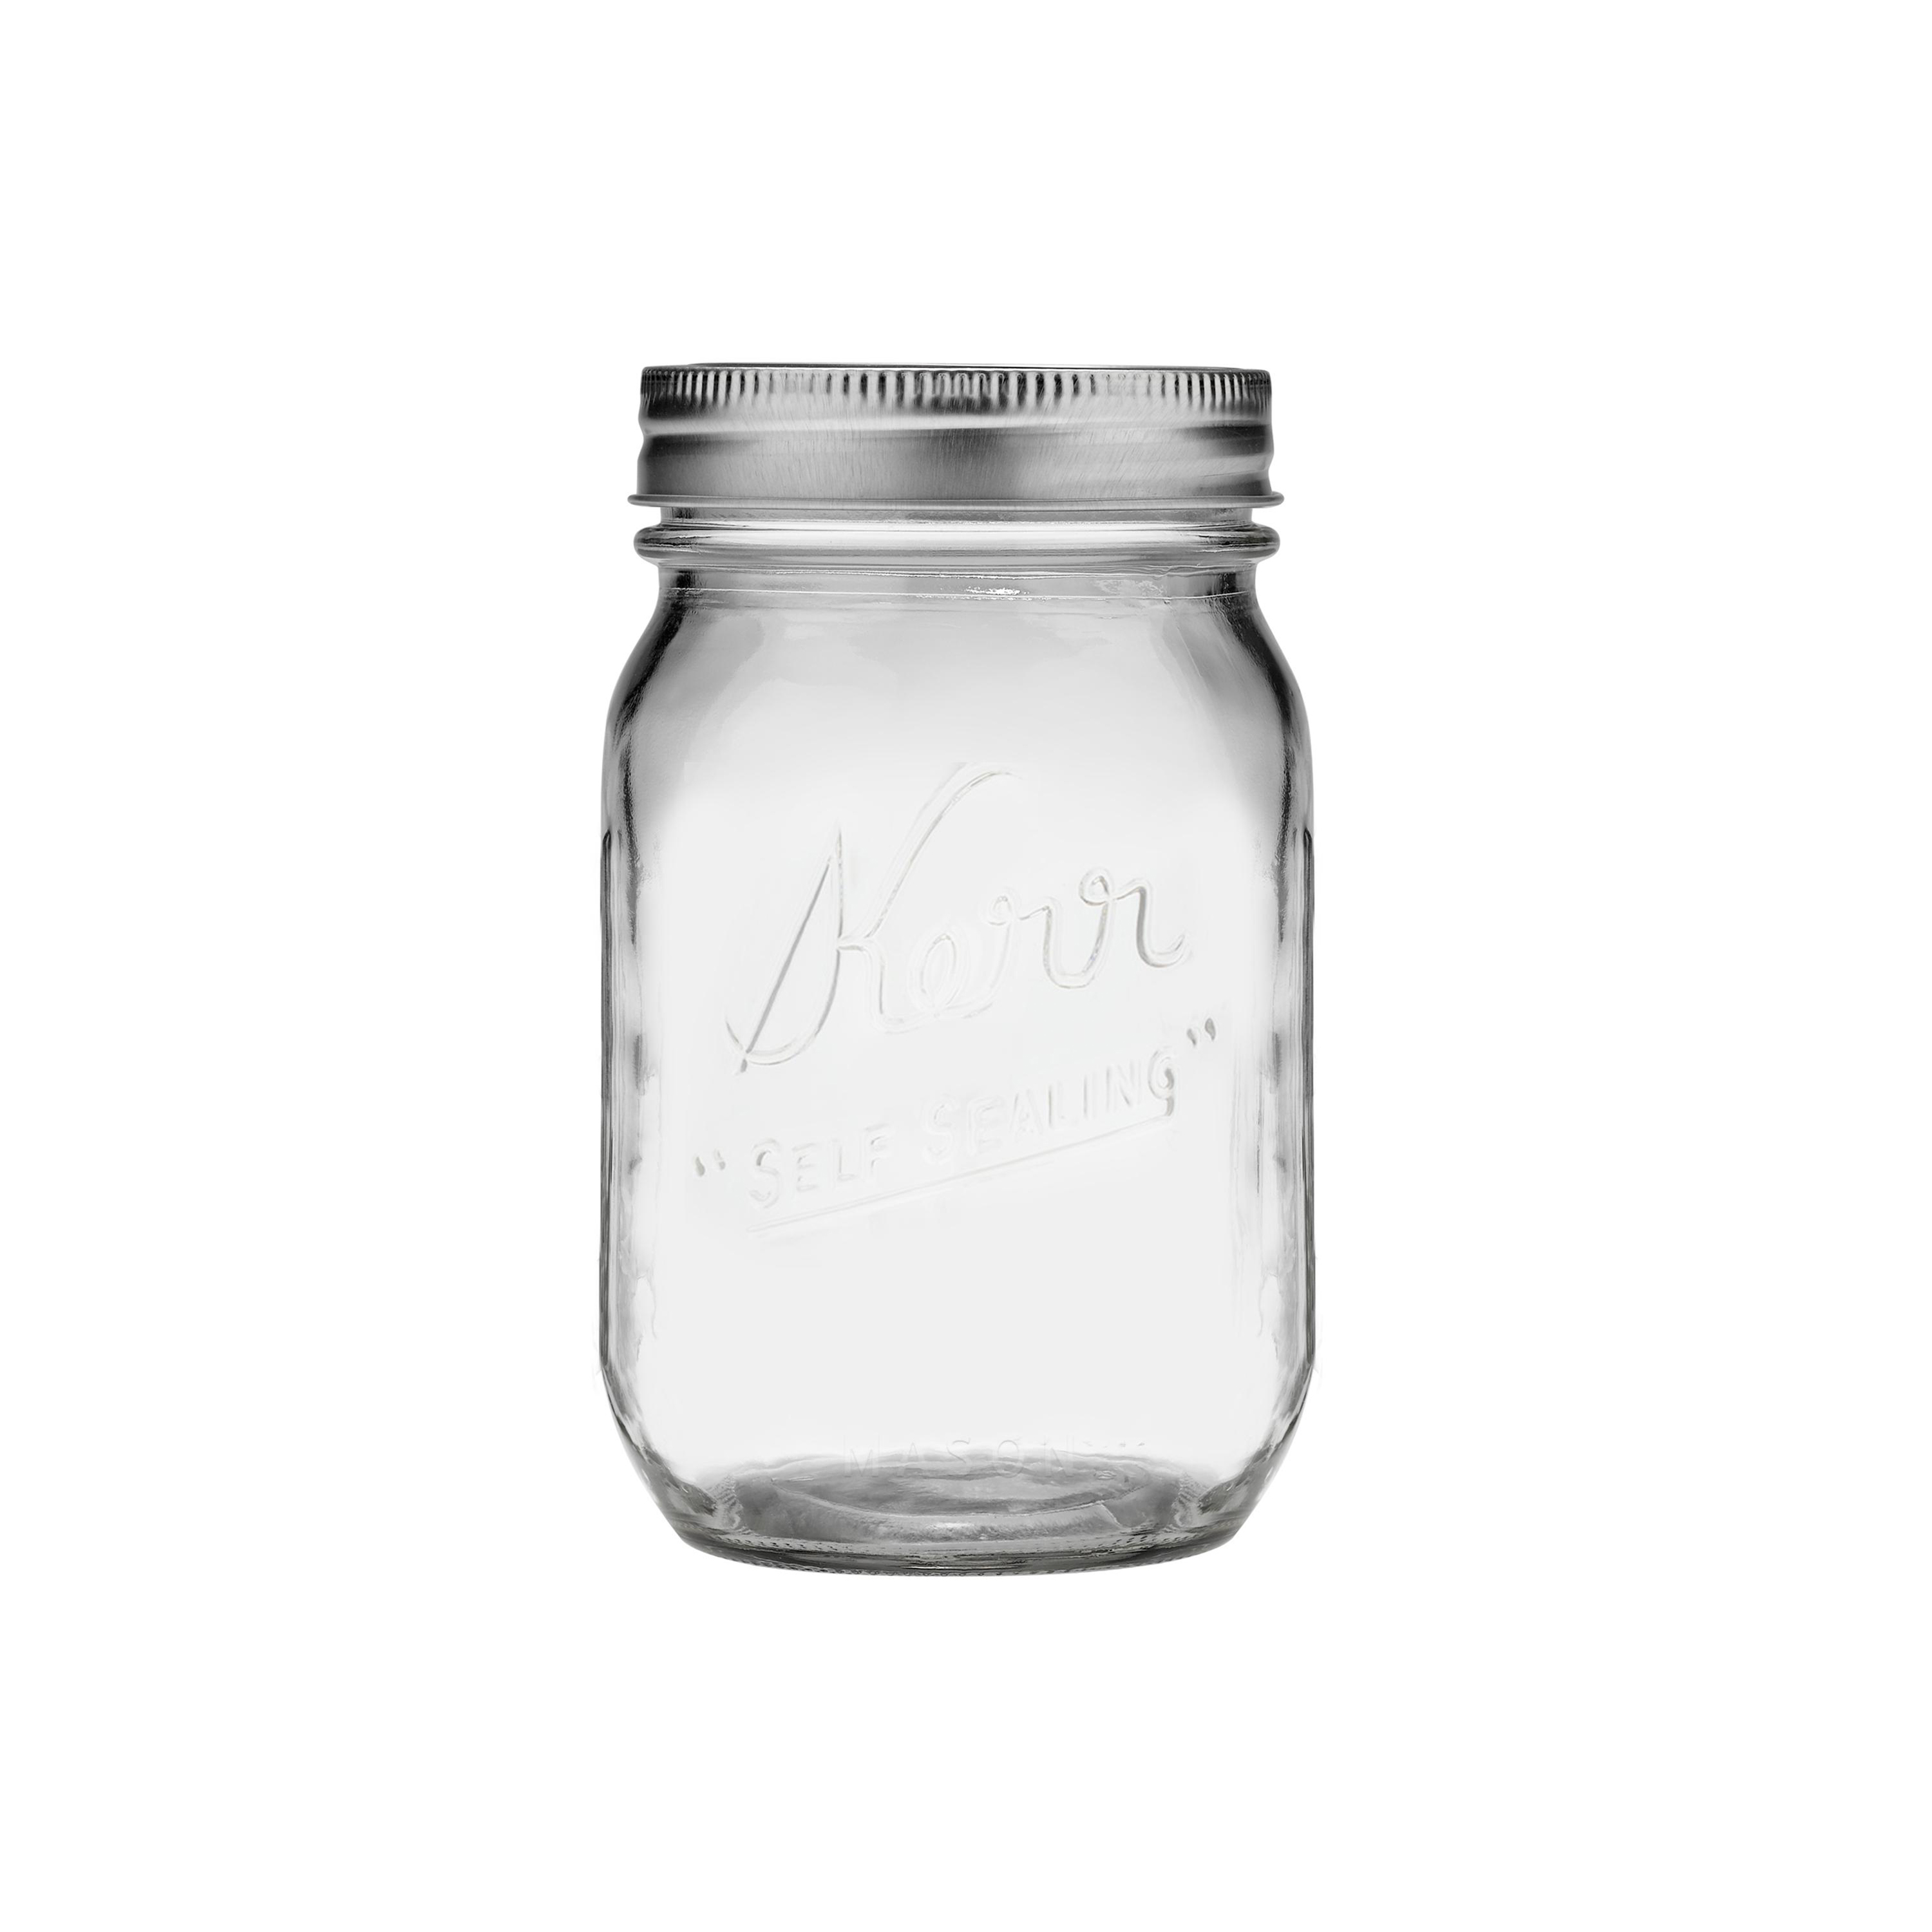 Kerr Regular Mouth Pint Glass Mason Jars with Lids and Bands, 16 oz., 12 Count